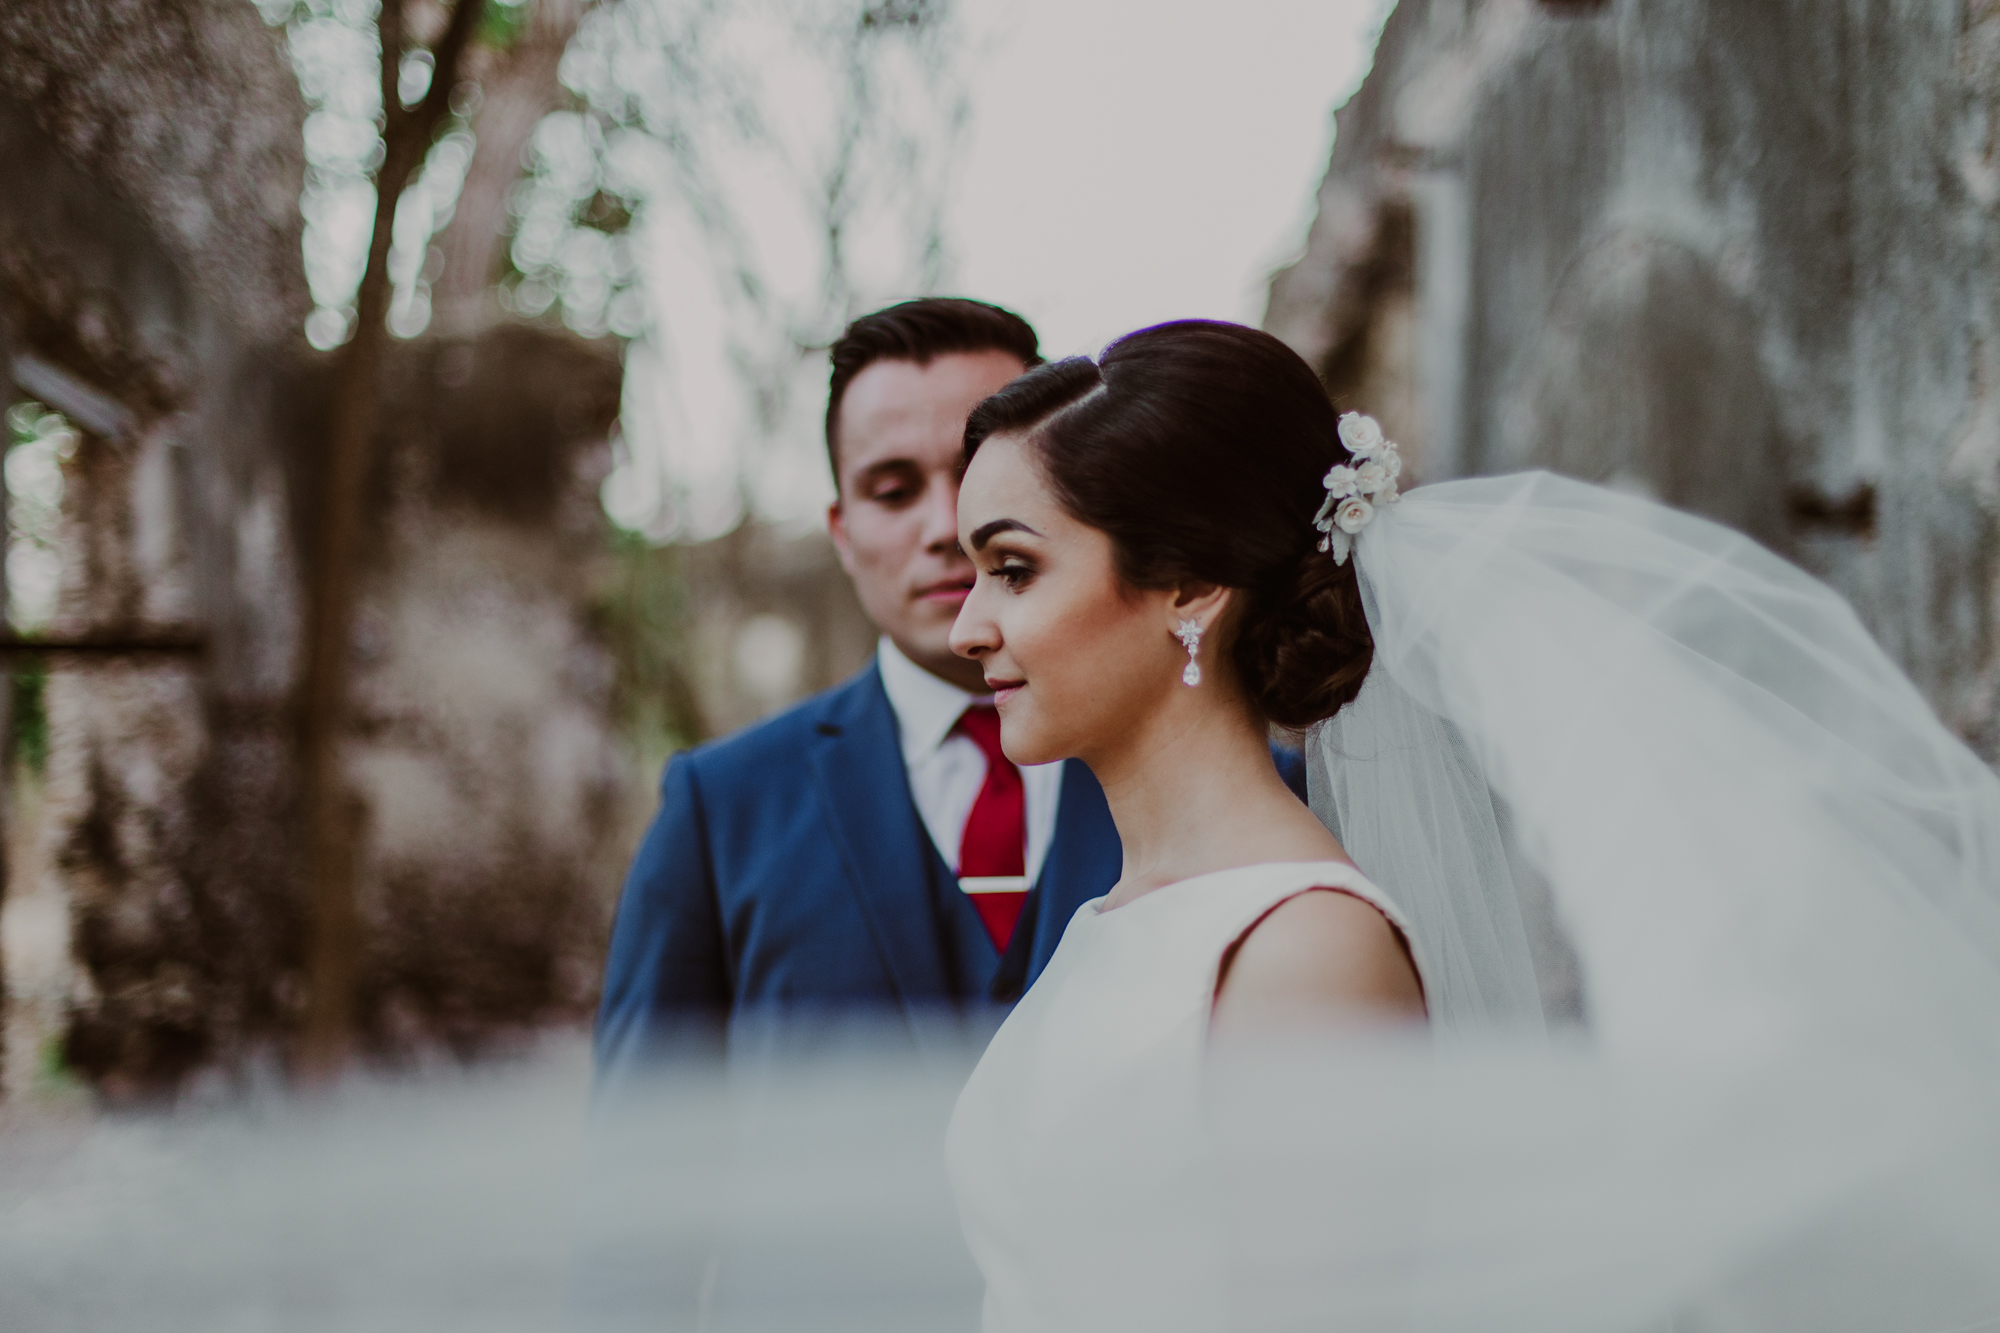 Angie & Horacio's Romantic Destination Wedding In Mexico, Photography by Daniela Villarreal for Destination Wedding Blog Adriana Weddings